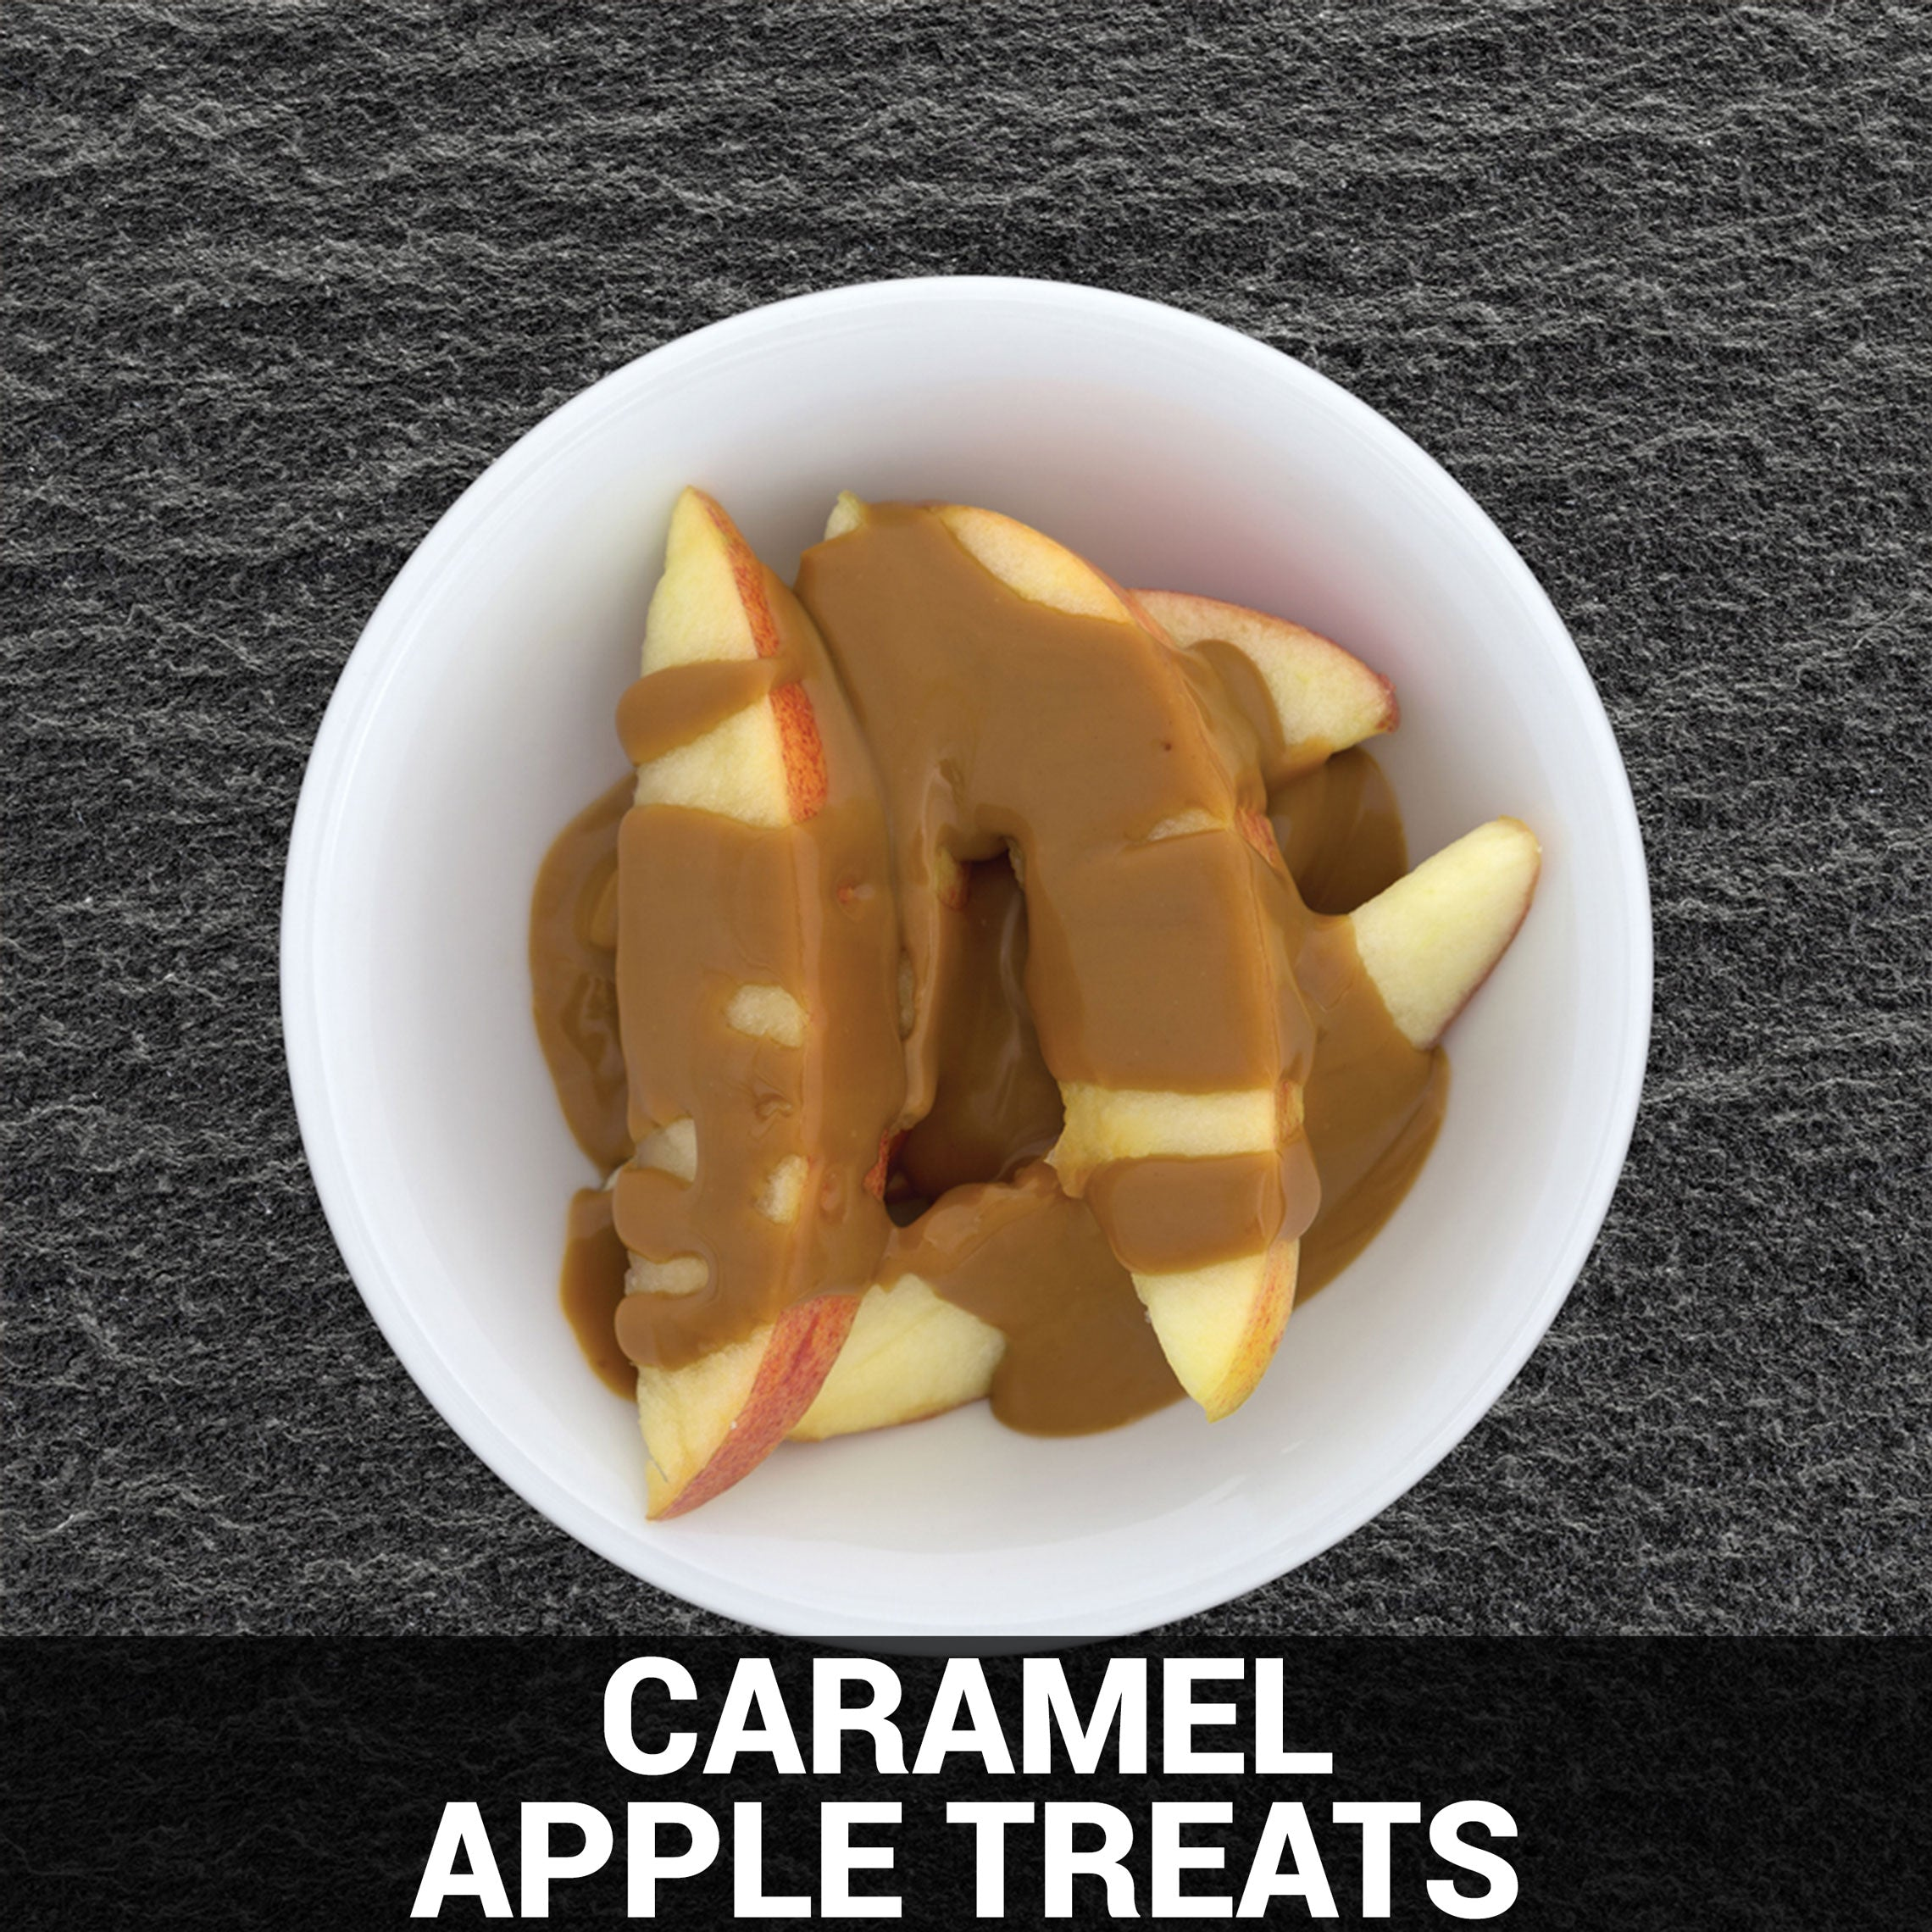 Caramel Apple Treats Recipe - Foods Alive